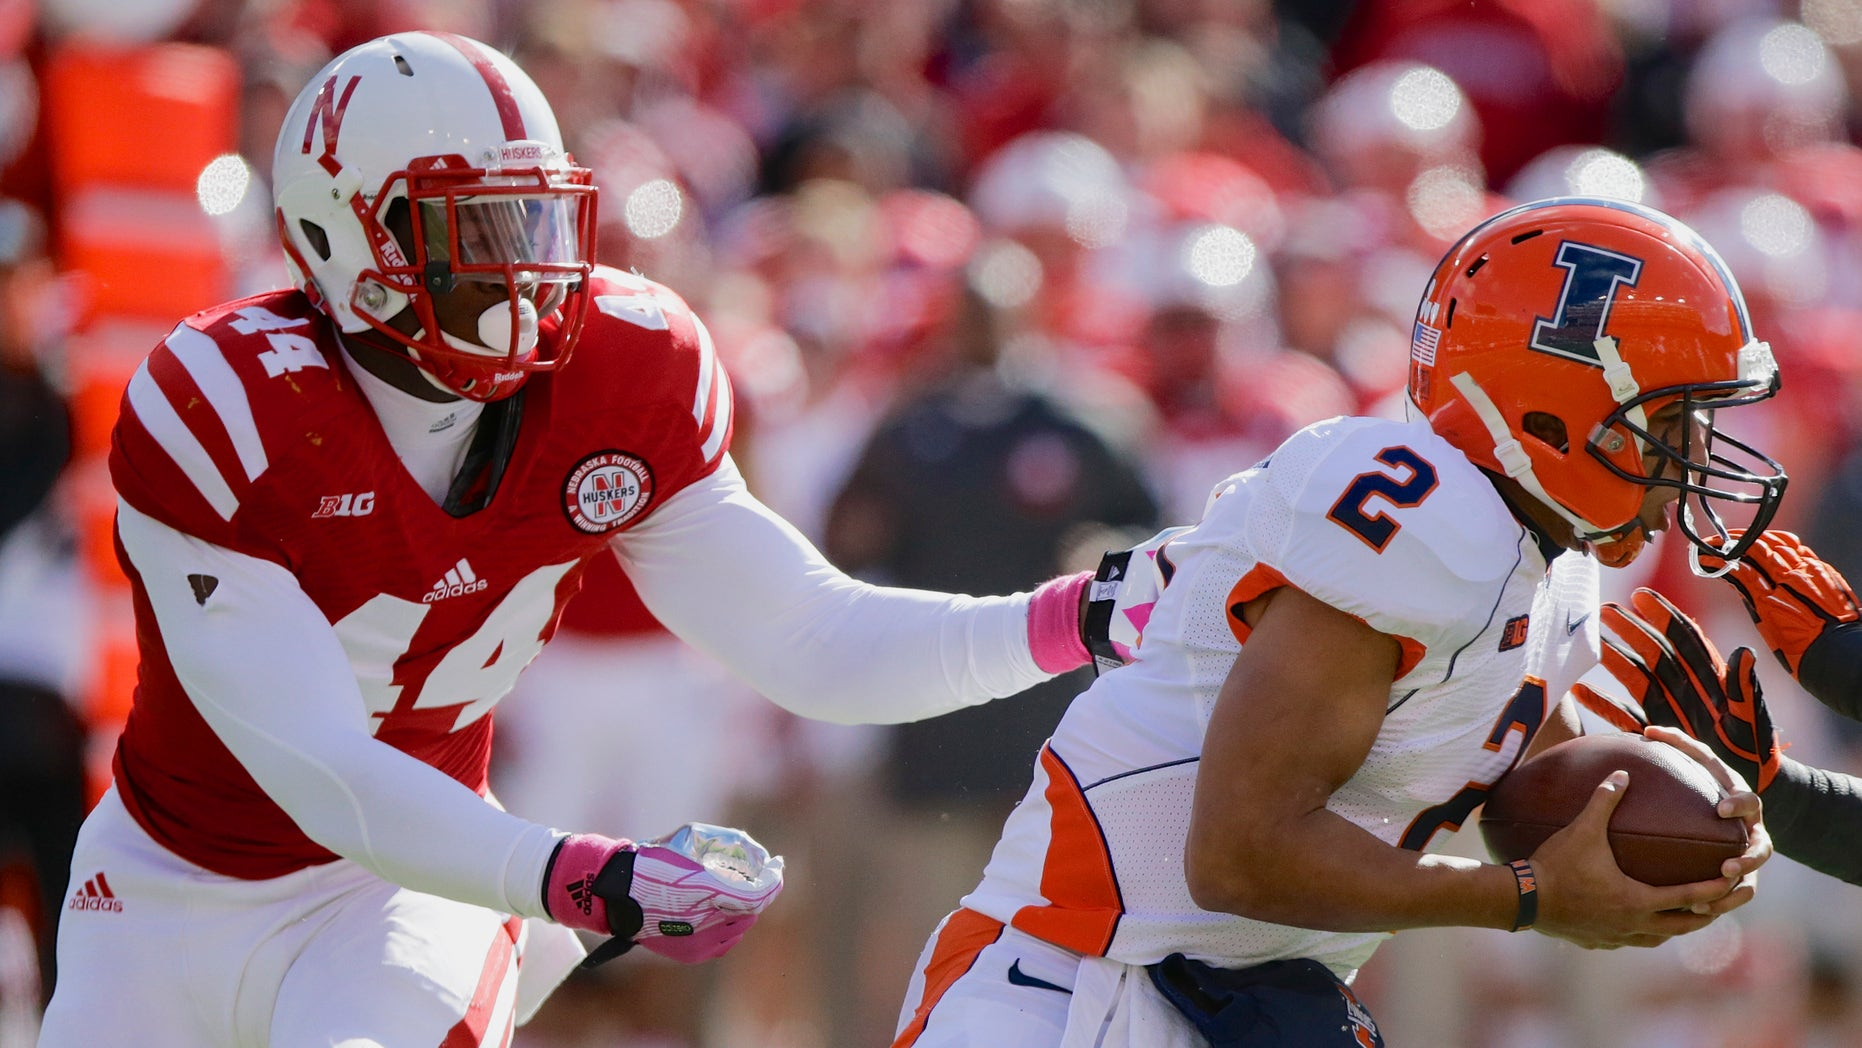 FILE - In this Oct. 5, 2013, file photo, Illinois quarterback Nathan Scheelhaase (2) is pursued and later sacked by Nebraska defensive end Randy Gregory (44) during the first half of an NCAA college football game in Lincoln, Neb. This week's game at Purdue game might not move the excitement meter for Nebraska fans. To Gregory, it's a red-letter game. He started junior college two years ago thinking he eventually would wind up at Purdue. Instead, he landed up at Nebraska. (AP Photo/Nati Harnik, File)